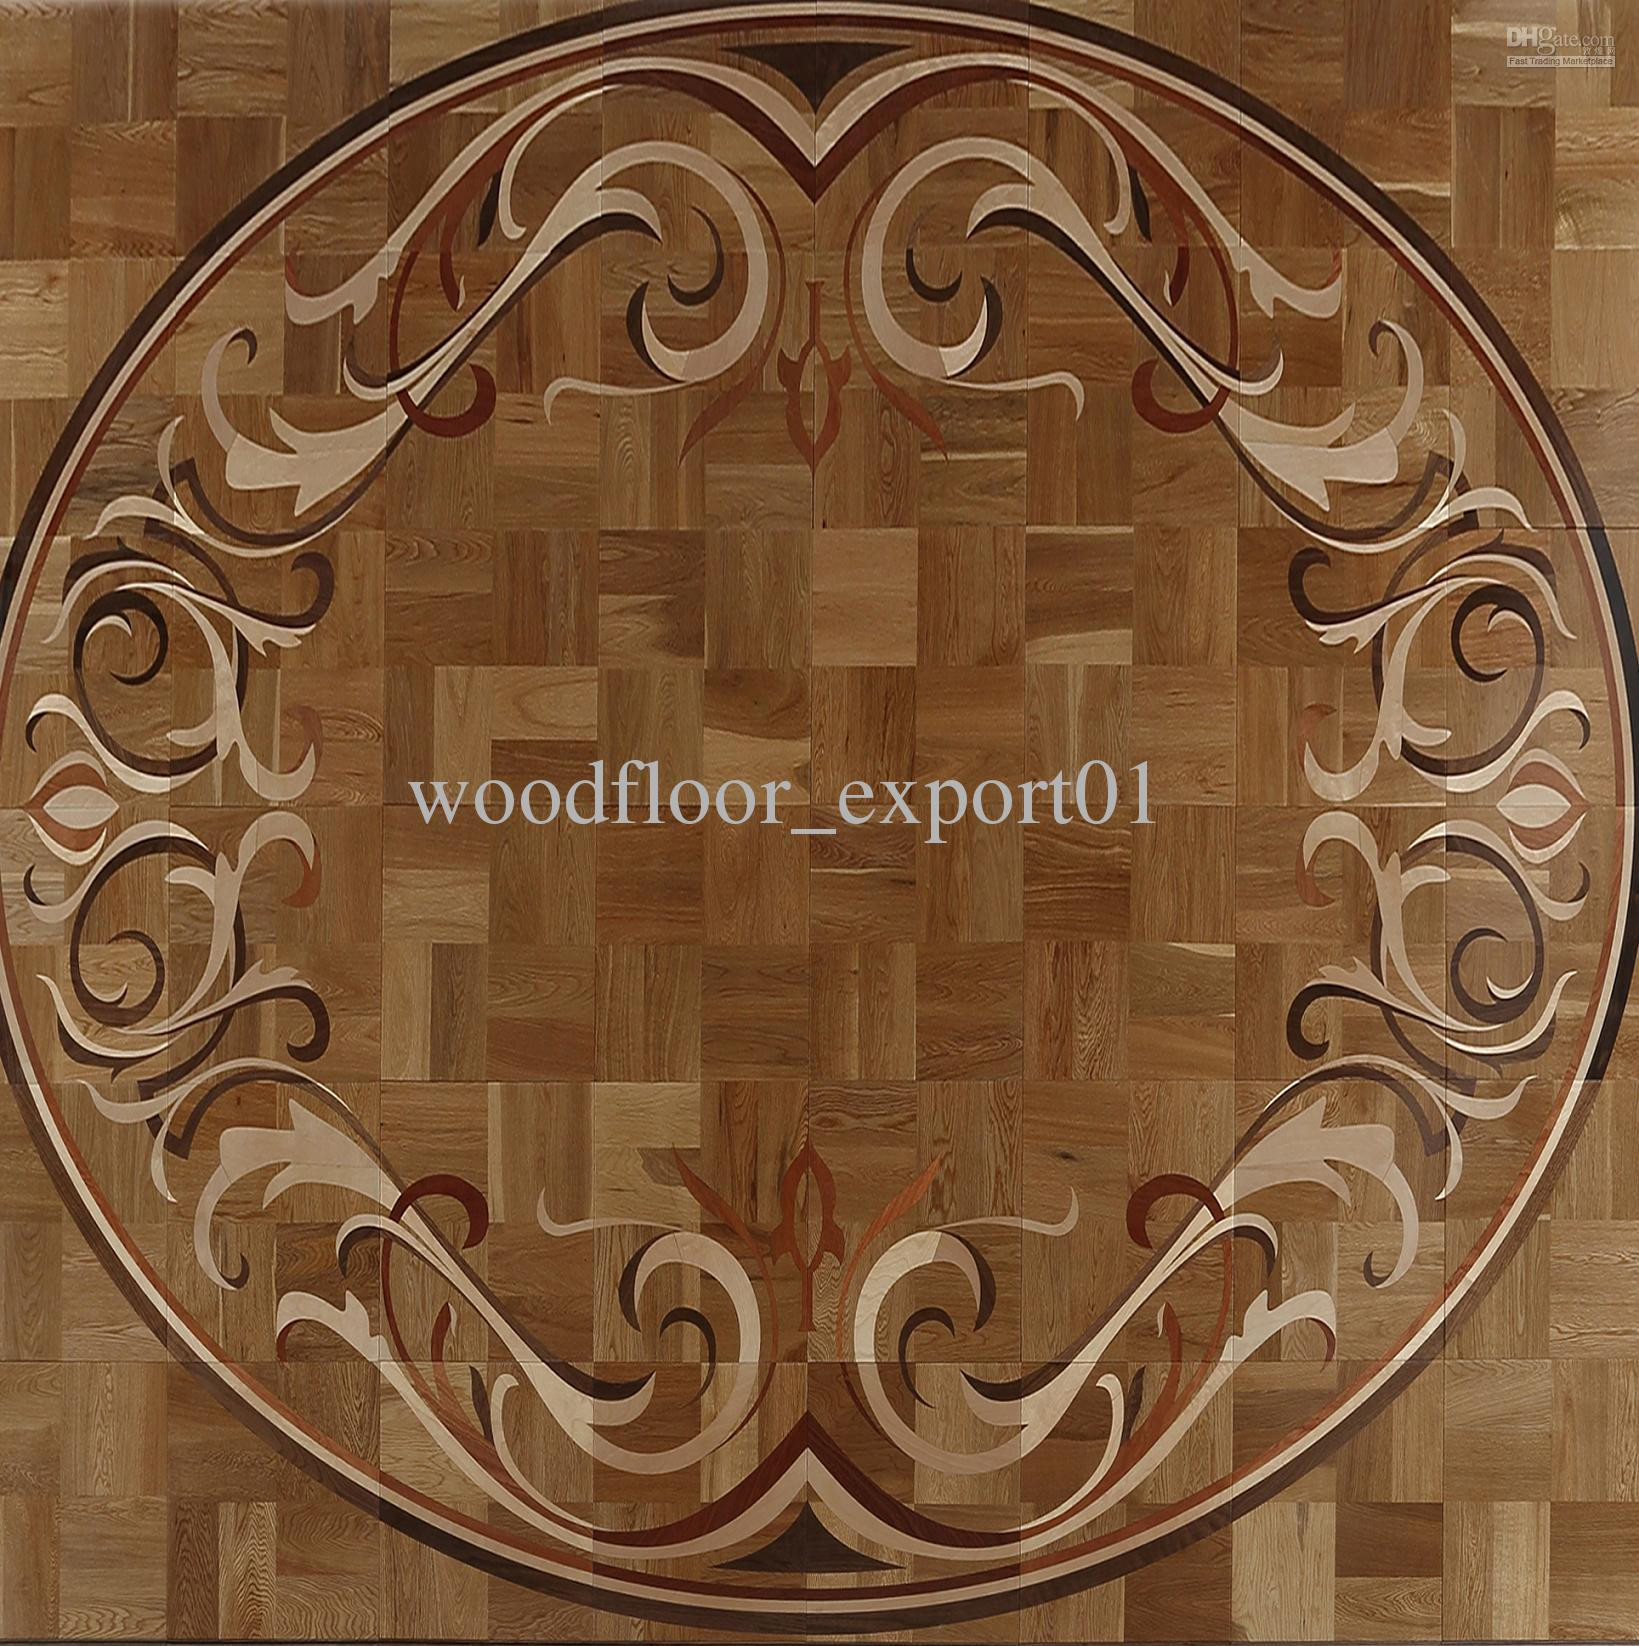 elm hardwood flooring reviews of art wood flooring hradwood flooring parquet tiles asian pear sapele within art wood flooring hradwood flooring parquet tiles asian pear sapele wood floor private custom wood floor decorative wood floor burmese teak wood flooring